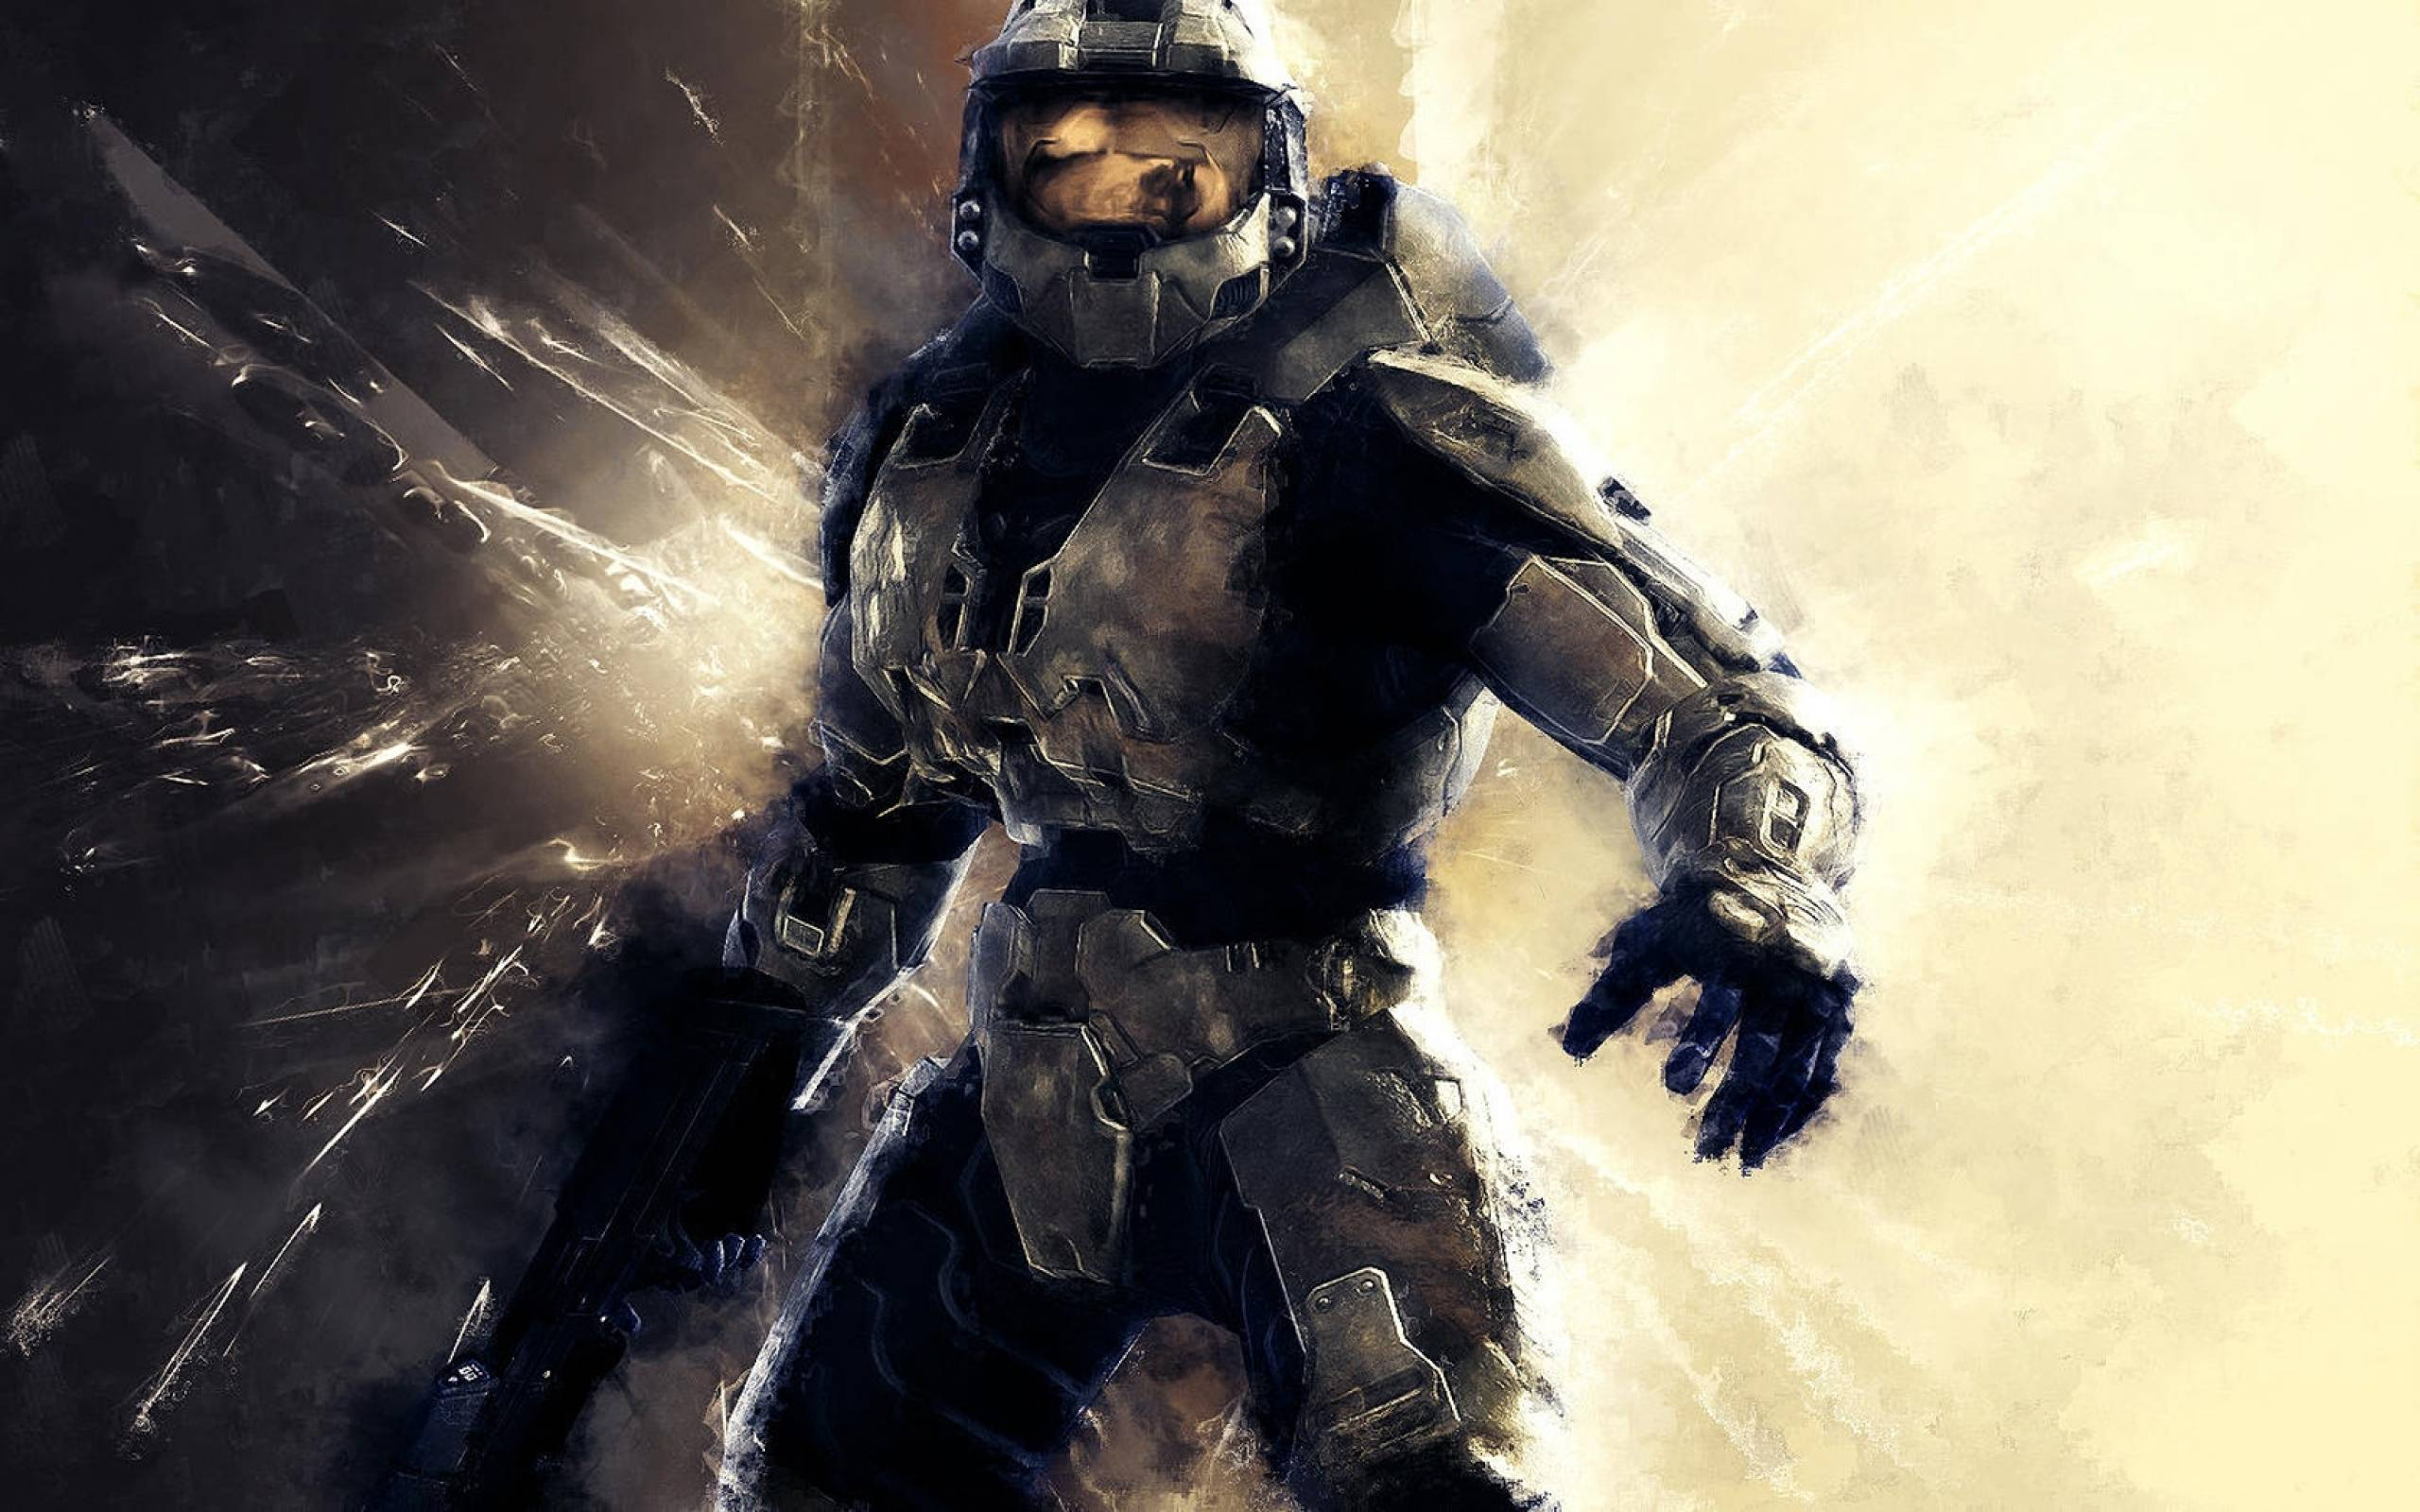 Images For Halo 4 Wallpaper 1920x1080